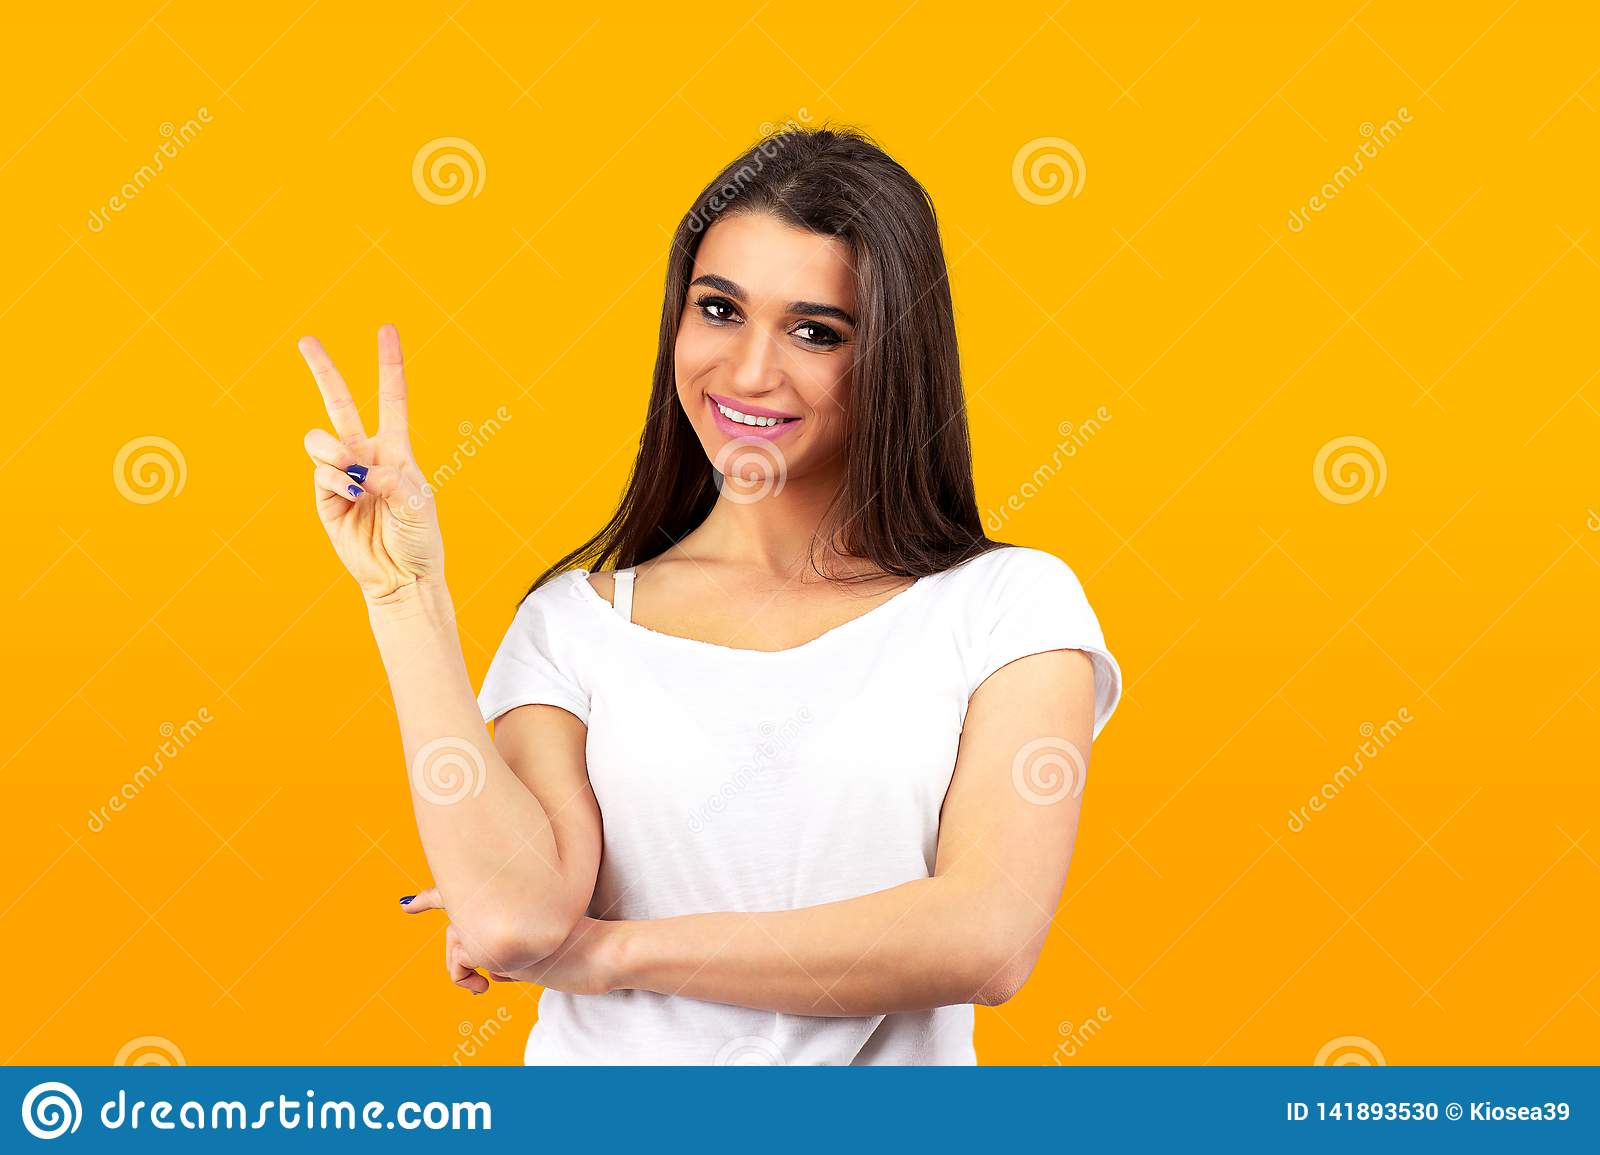 Cute young woman standing looking at camera showing peace gesture